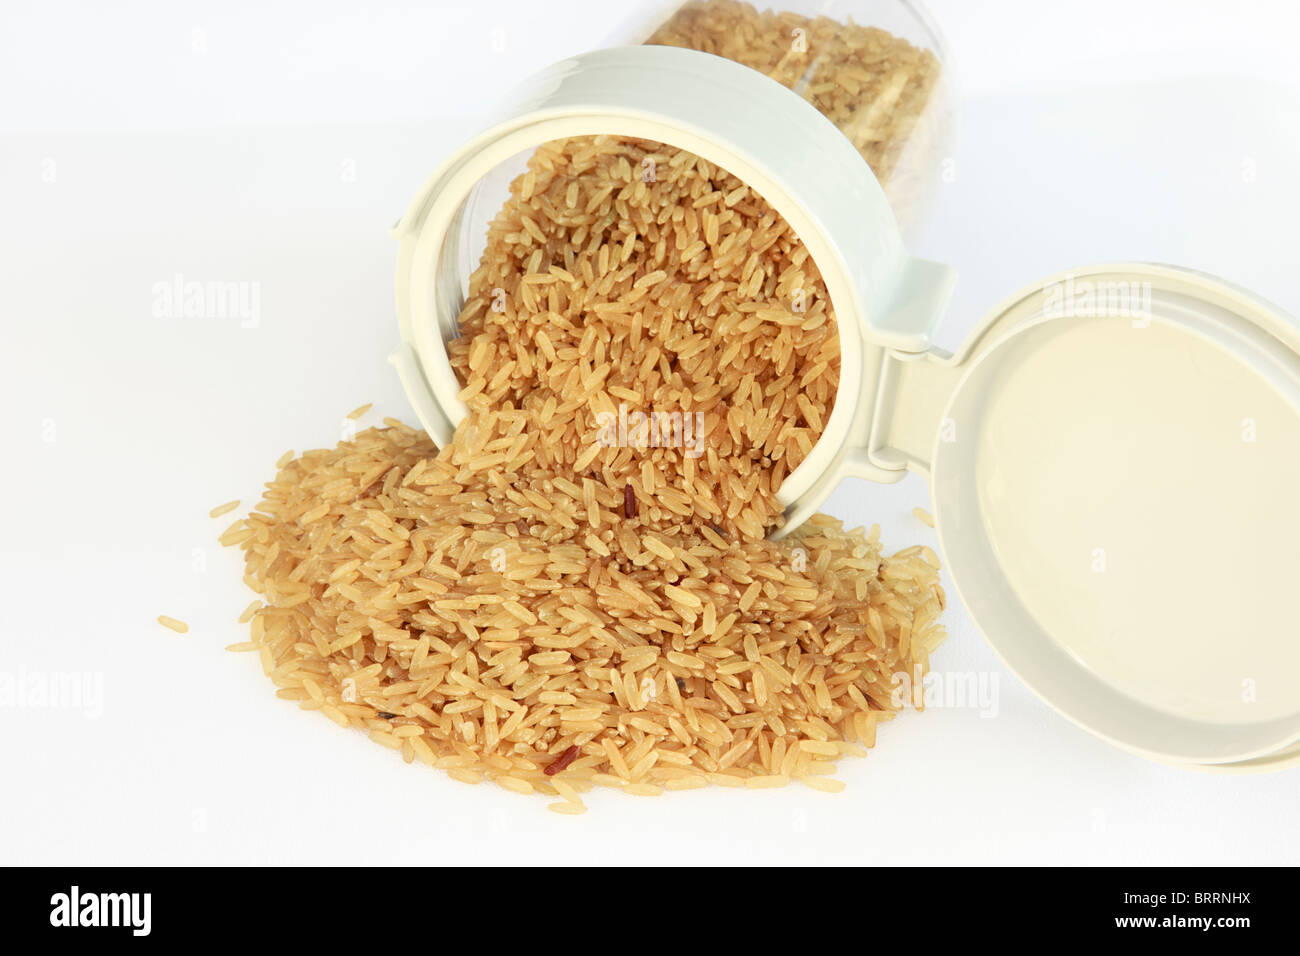 Pile of uncooked brown rice spilling out of a plastic food pot with an open lid top - Stock Image